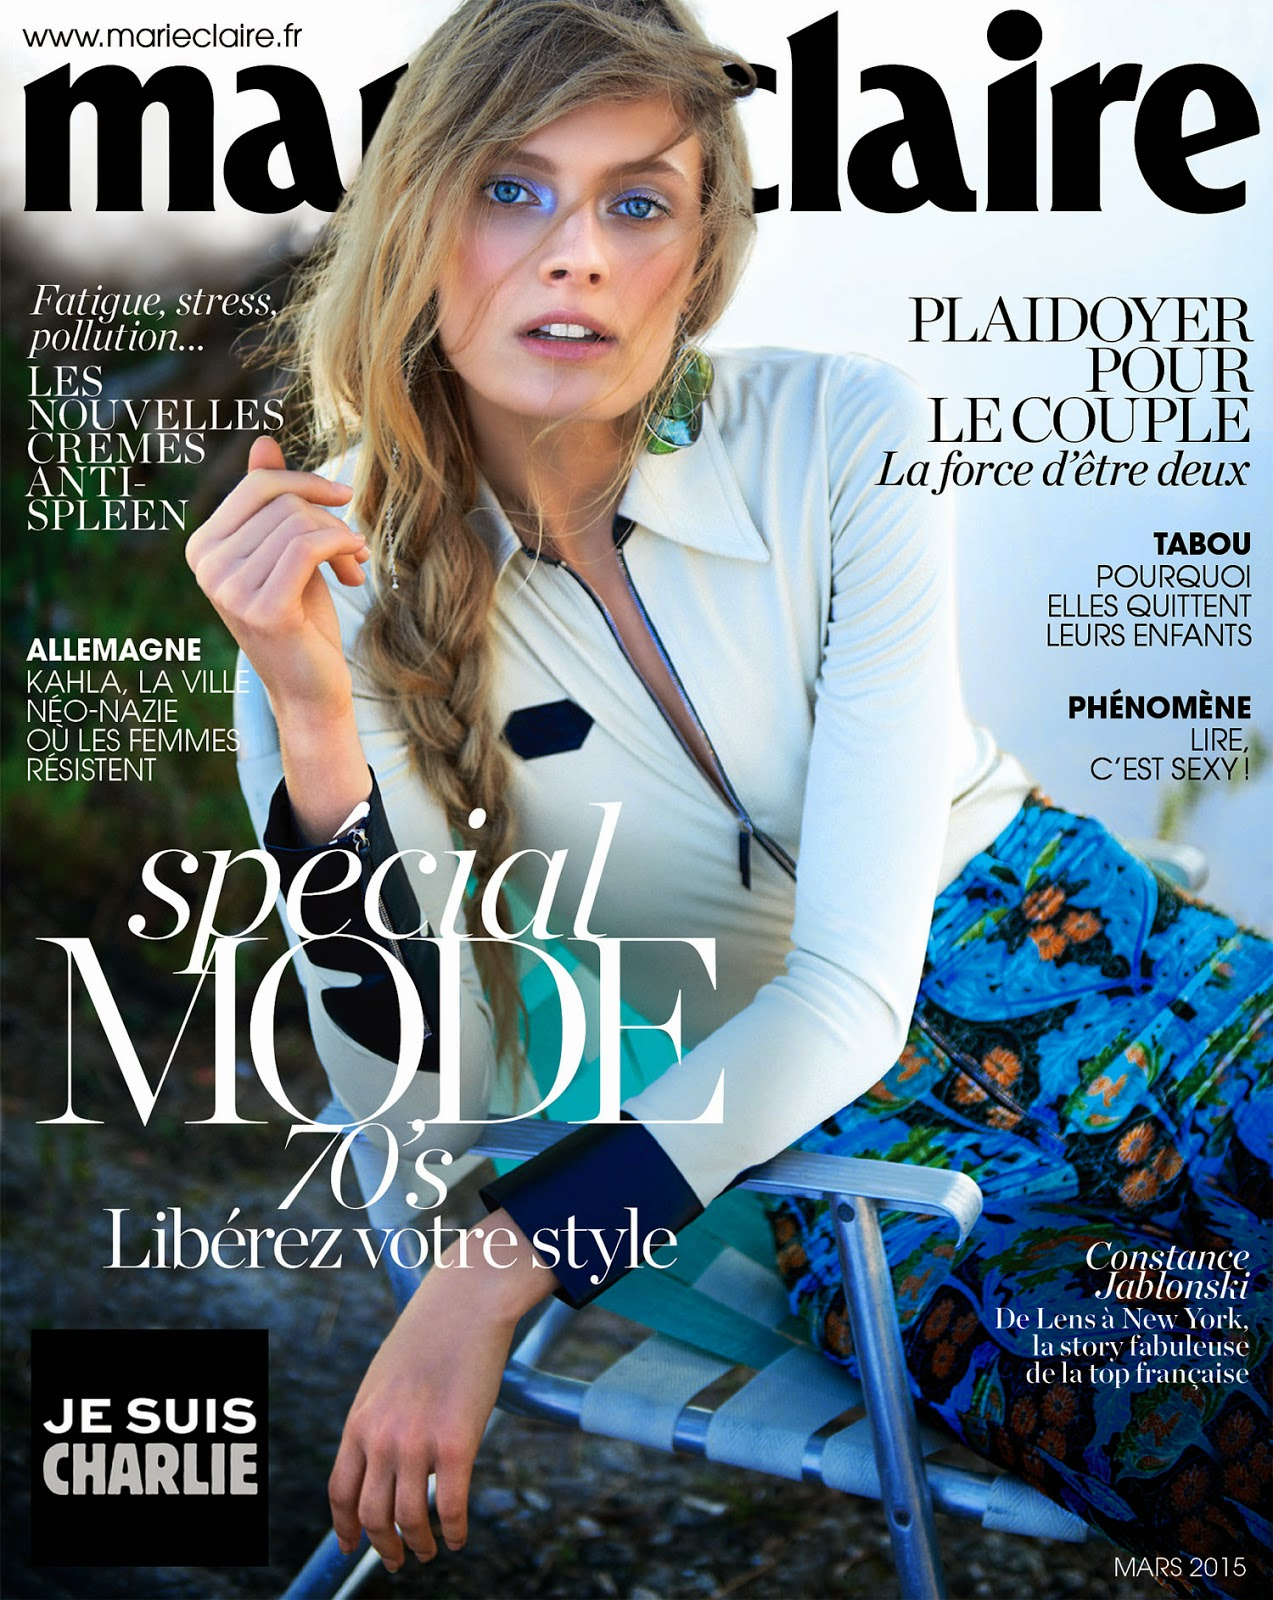 Fashion Model: Constance Jablonski by Tim Barber for Marie Claire France